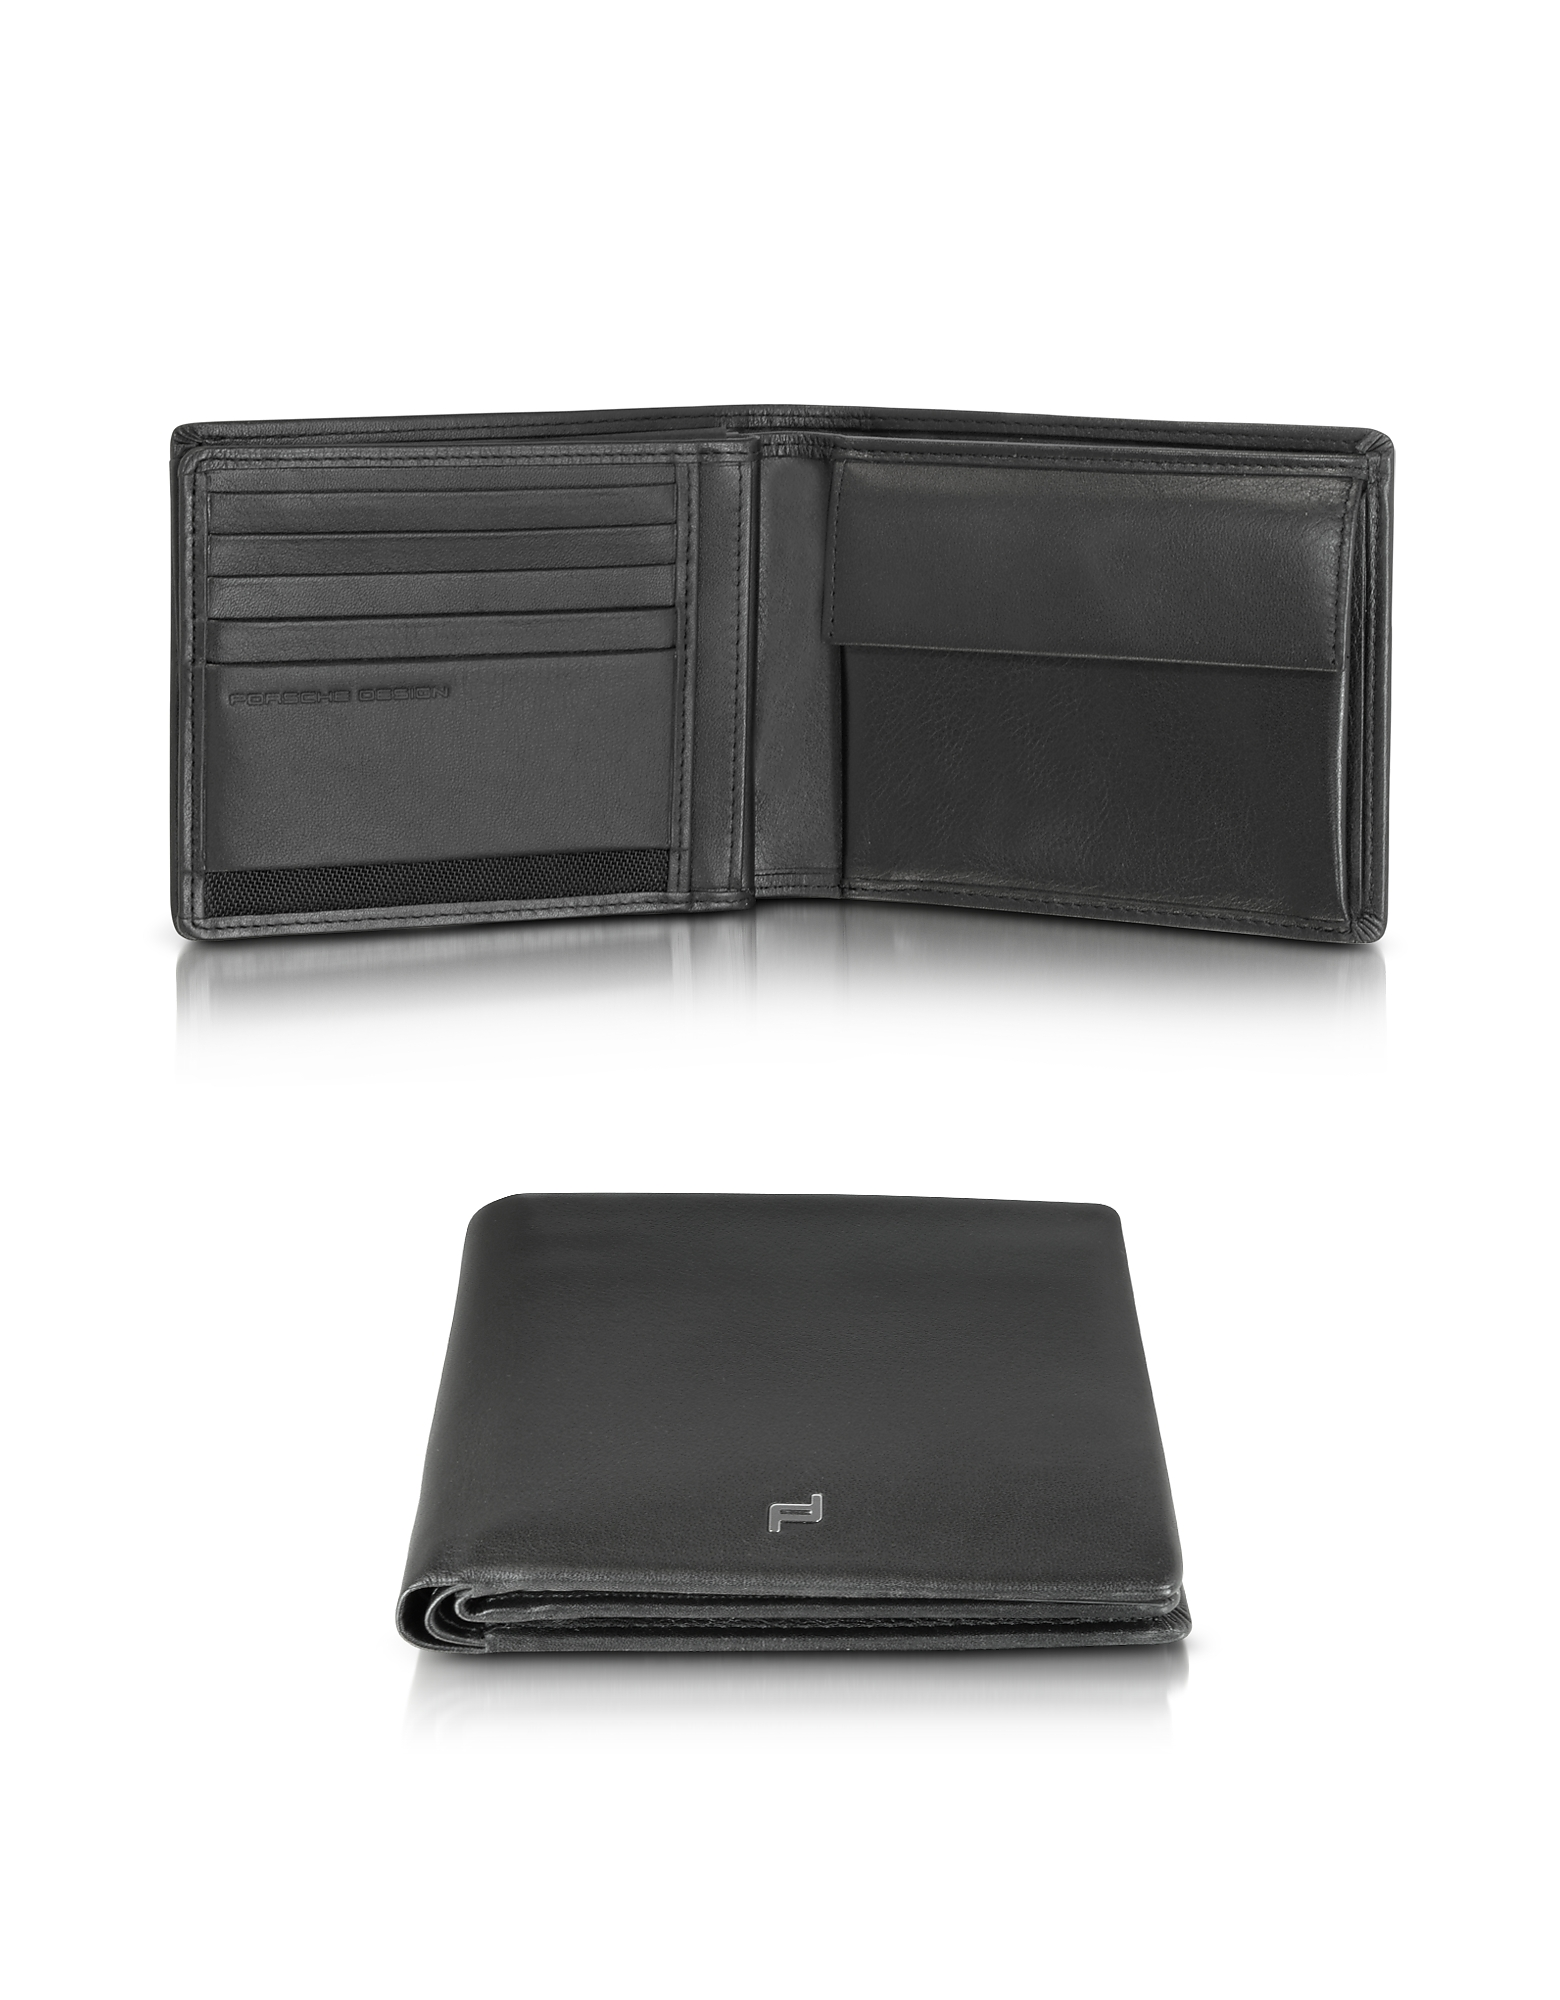 Porsche Design Wallets, Touch Black Leather H10 Billfold Wallet